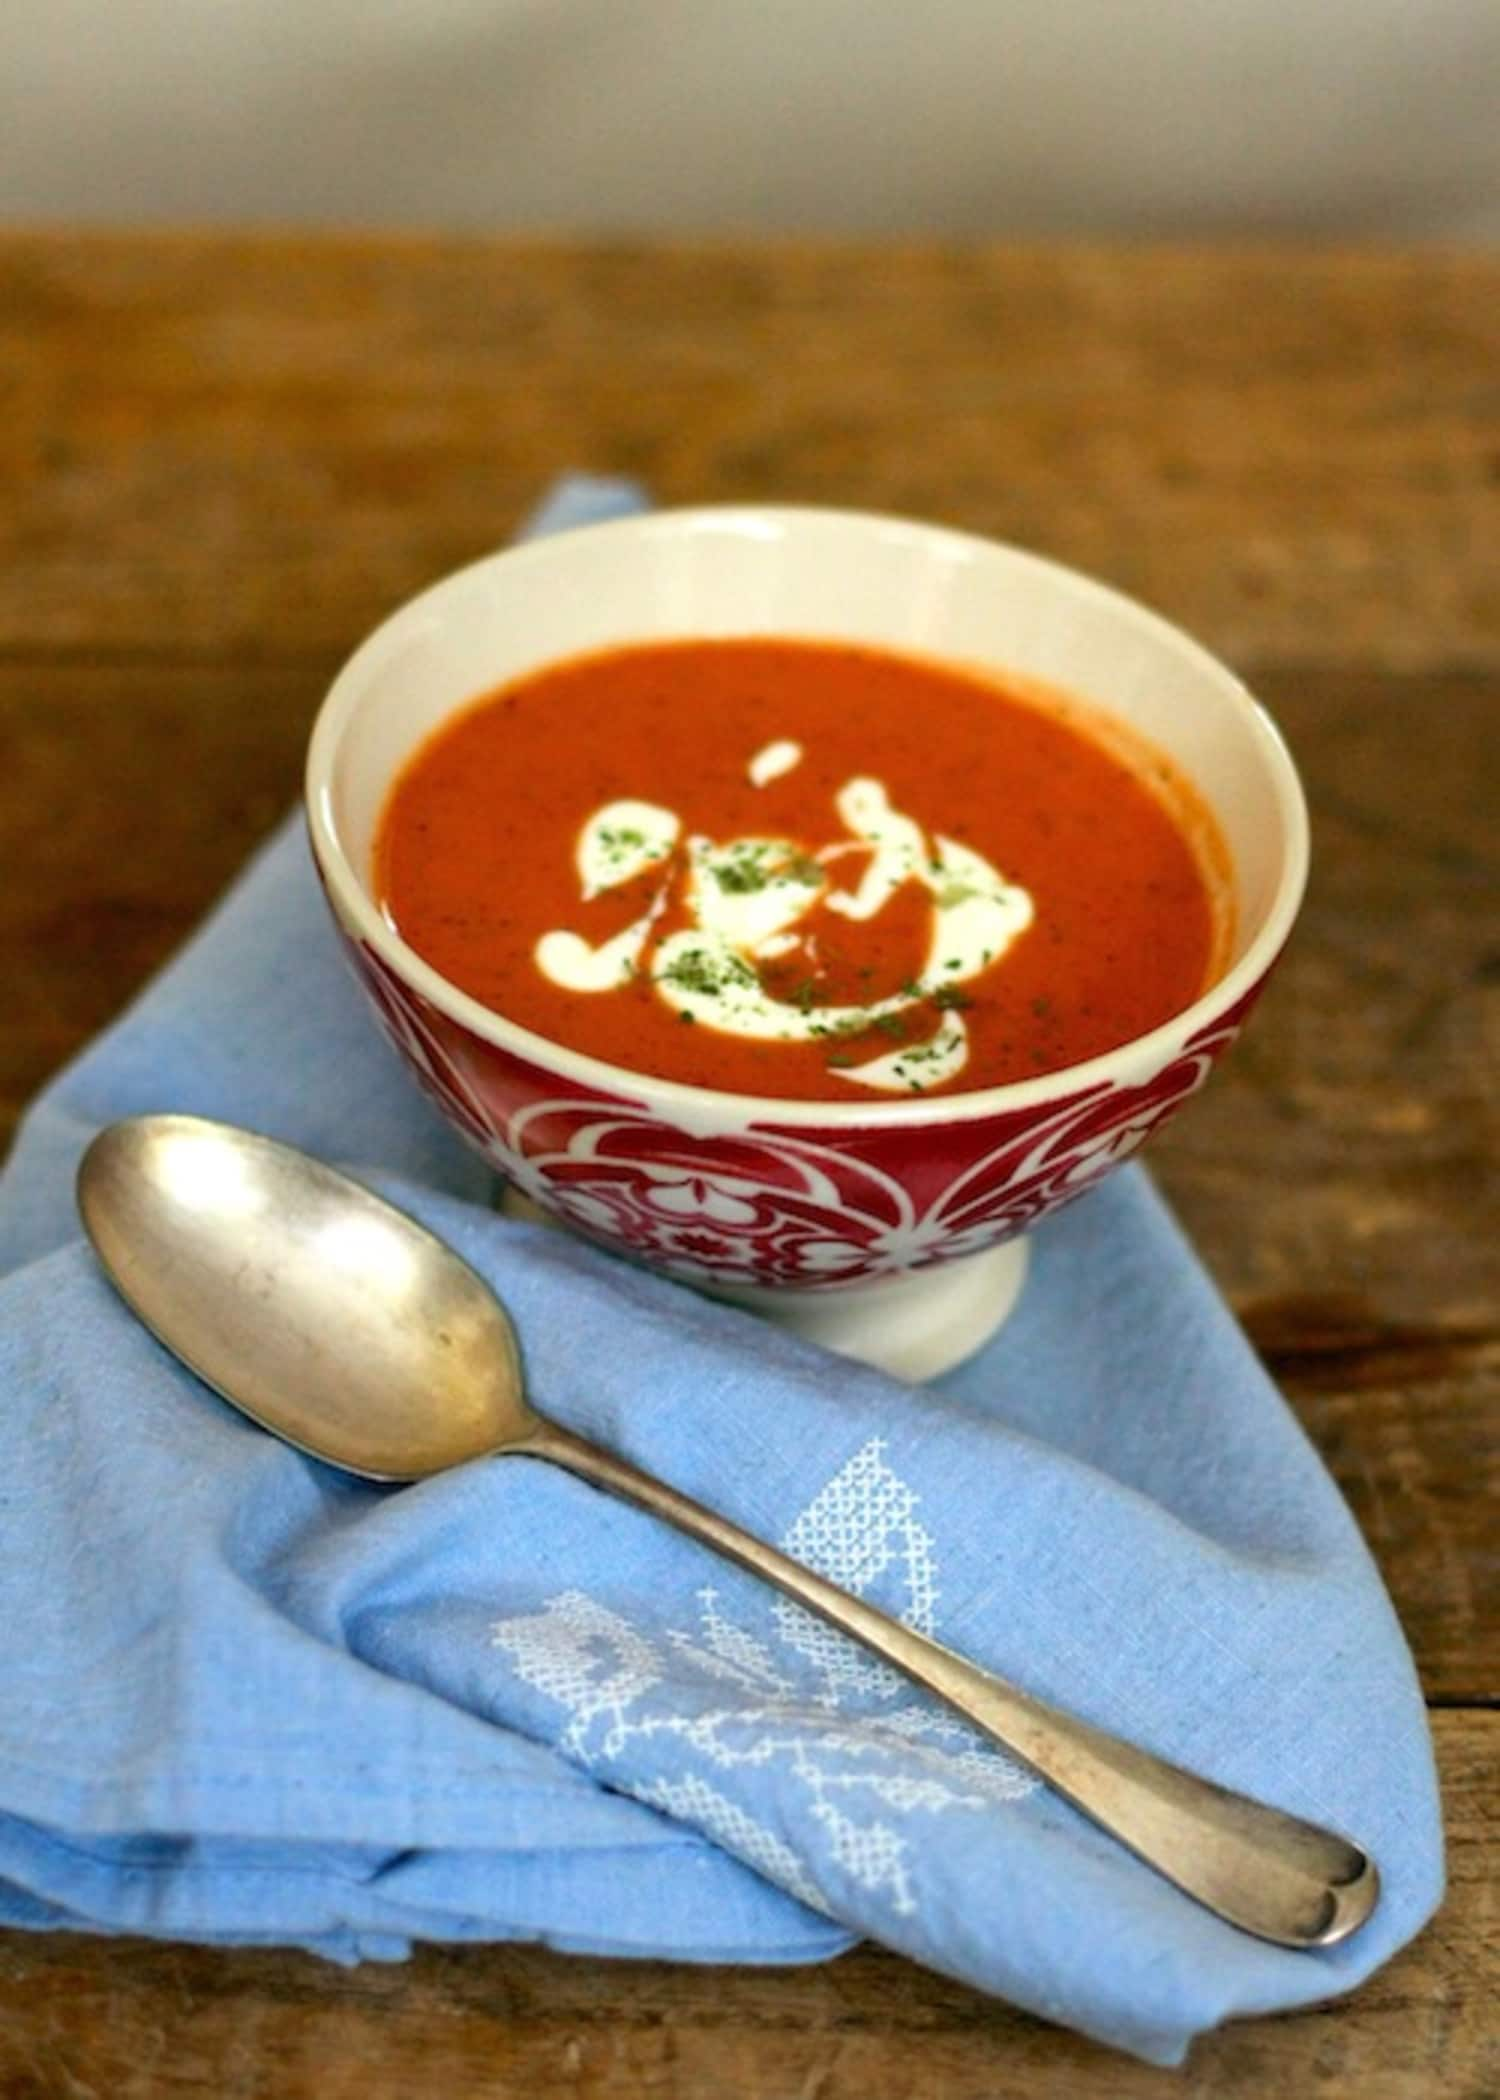 How to Make Creamy Tomato Soup Without the Cream: 3 Brilliant Tips